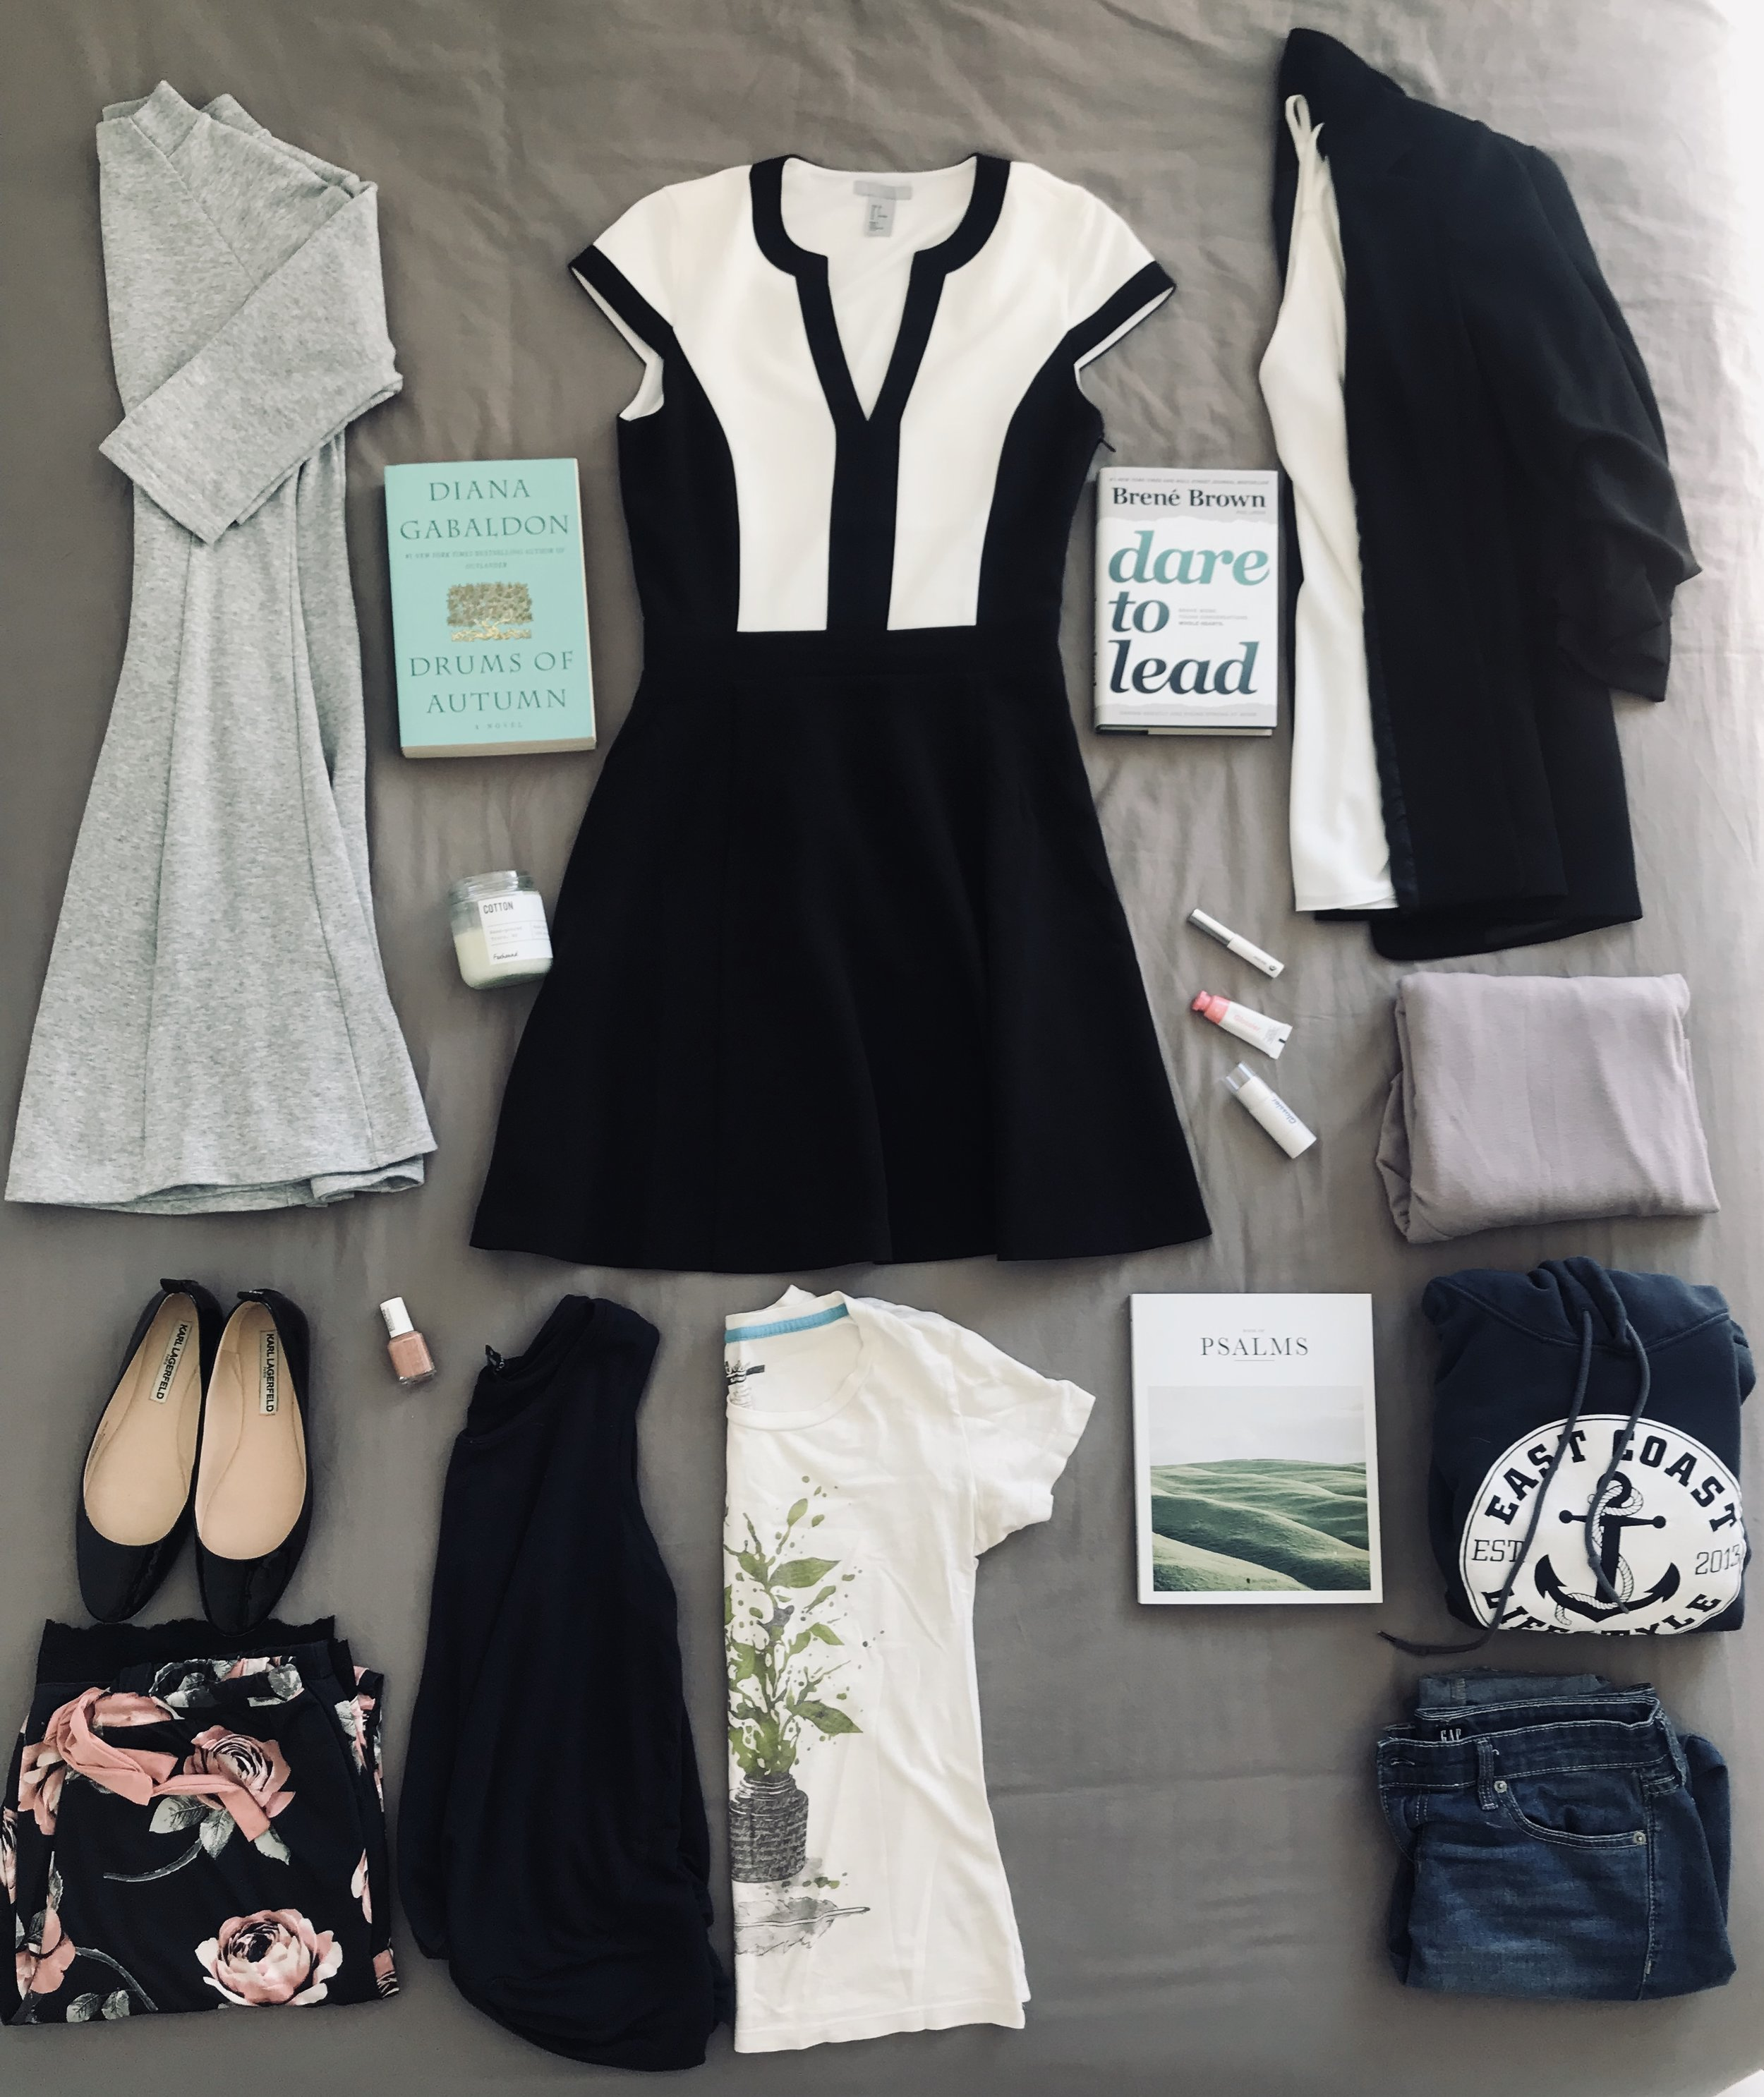 Top Centre - Clockwise  - Black/White Dress   | H&M,   Dare to Lead by Brené Brown   | Indigo,   White Silk Tank   | RW&Co,   Black Blazer   | H&M,   Glossier Tint, Glossier Highlighter, Glossier Boy Brow   | Gift From Jasmine,   Lavender Shirt   | Pseudio,   East Coast Lifestyle Hoodie   | Pseudio,   Psalms  | Gift from Jasmine,  Girlfriend Jeans   | The Gap,   Missing in the gap is Green Pants   | RW&co,   Graphic T   | Threadless,   Blue Tank   | RW&Co,   Silk Rose PJ Pants   | La Vie En Rose,   Patent Leather Shoes   | Birthday Gift from mom,   Essie Nail Polish | Shoppes Drug Mart, Grey Dress |  Second hand from Jasmine,  Cotton Candle   | Foxhound,   Drums of Autumn by Diana Gabaldon   | Indigo